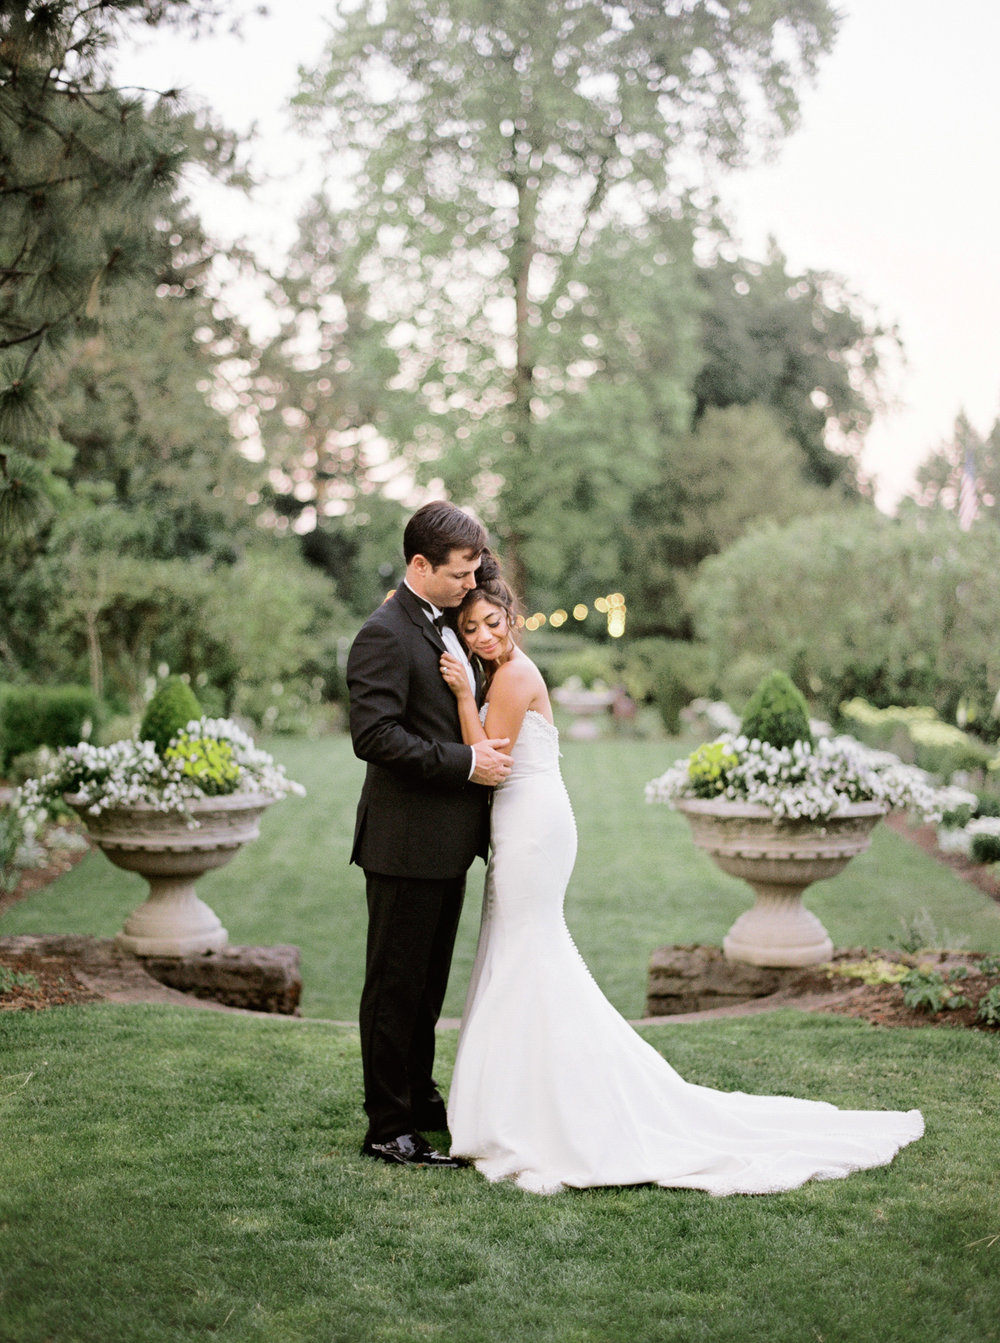 112OutliveCreative_Travel_Photographer_Videographer_Lewis&Clark_Oregon_Elegant_BlackTie_Destination_Wedding.jpg